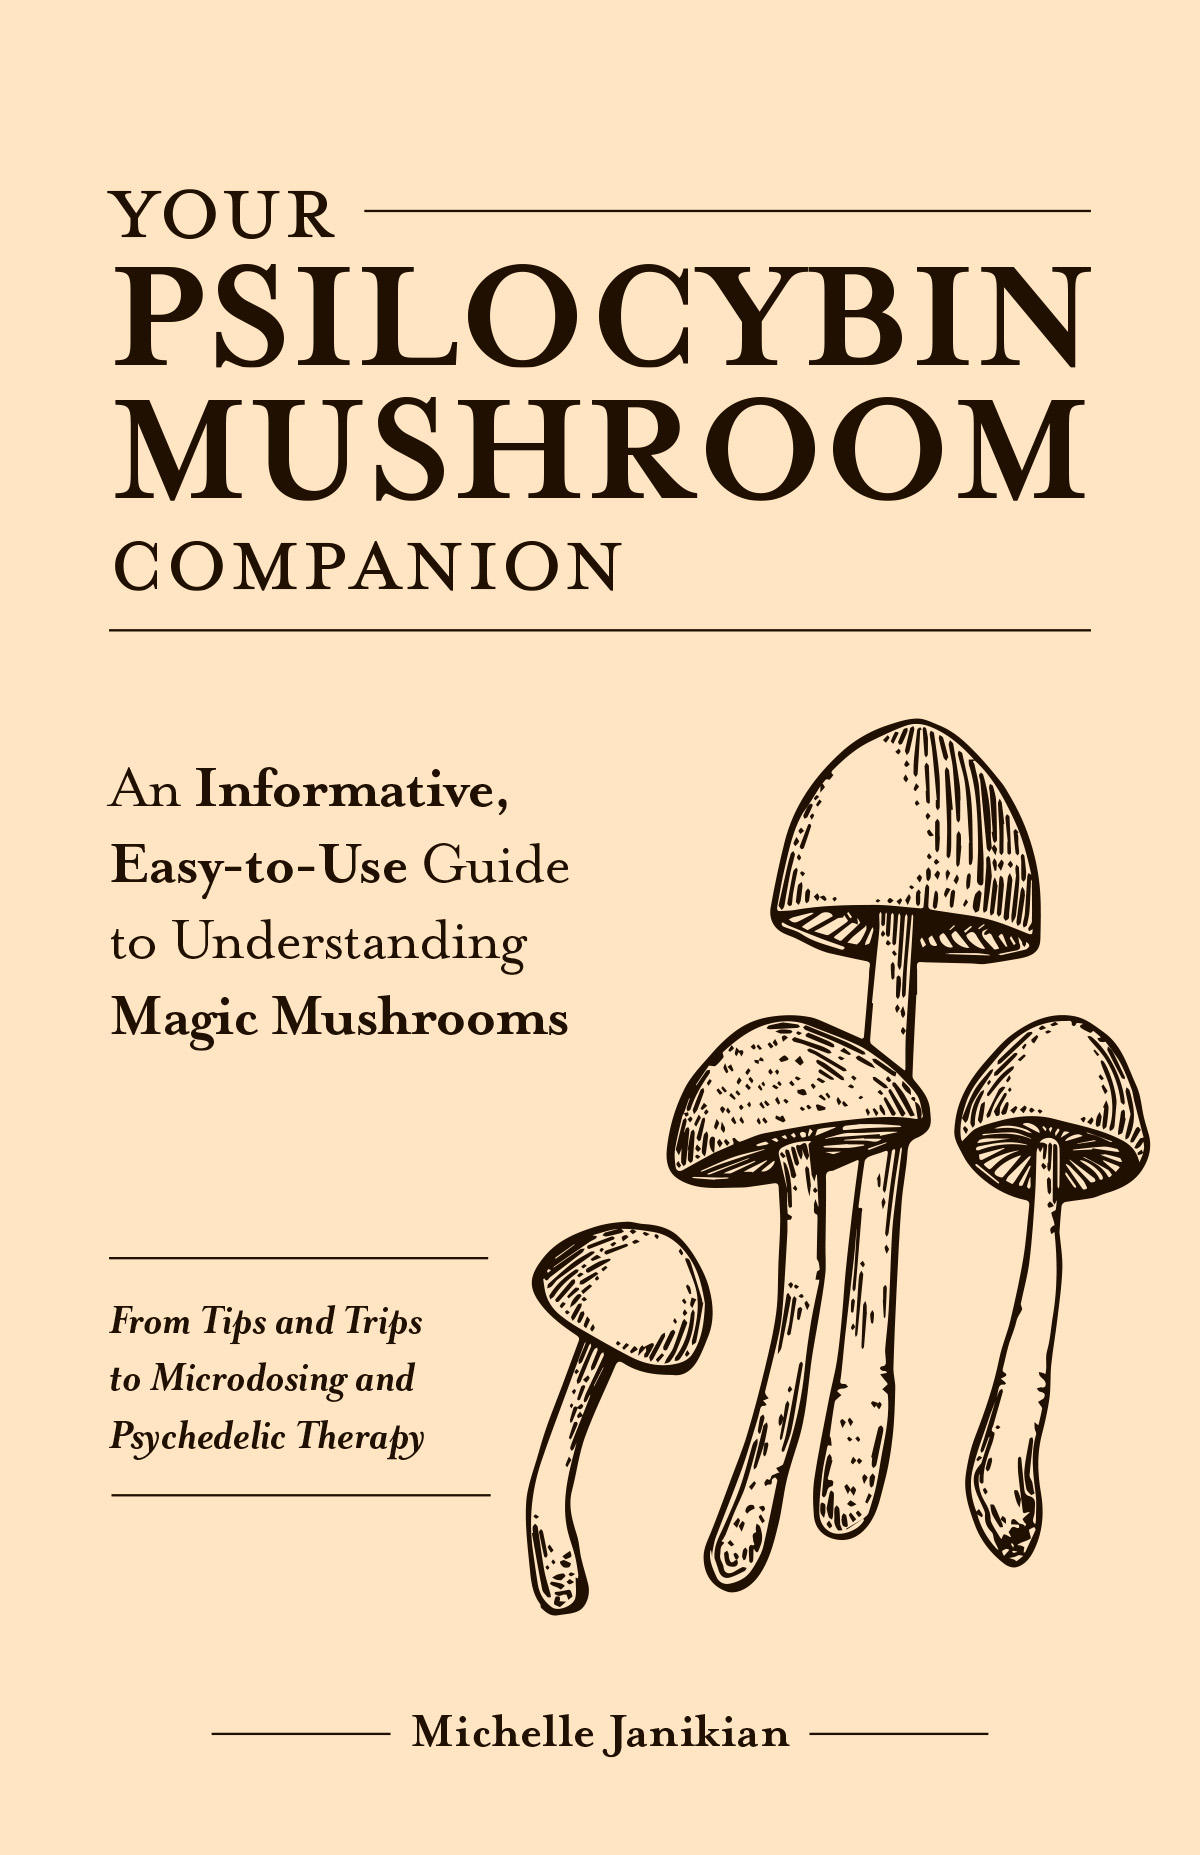 Your Psilocybin Mushroom Companion Cover